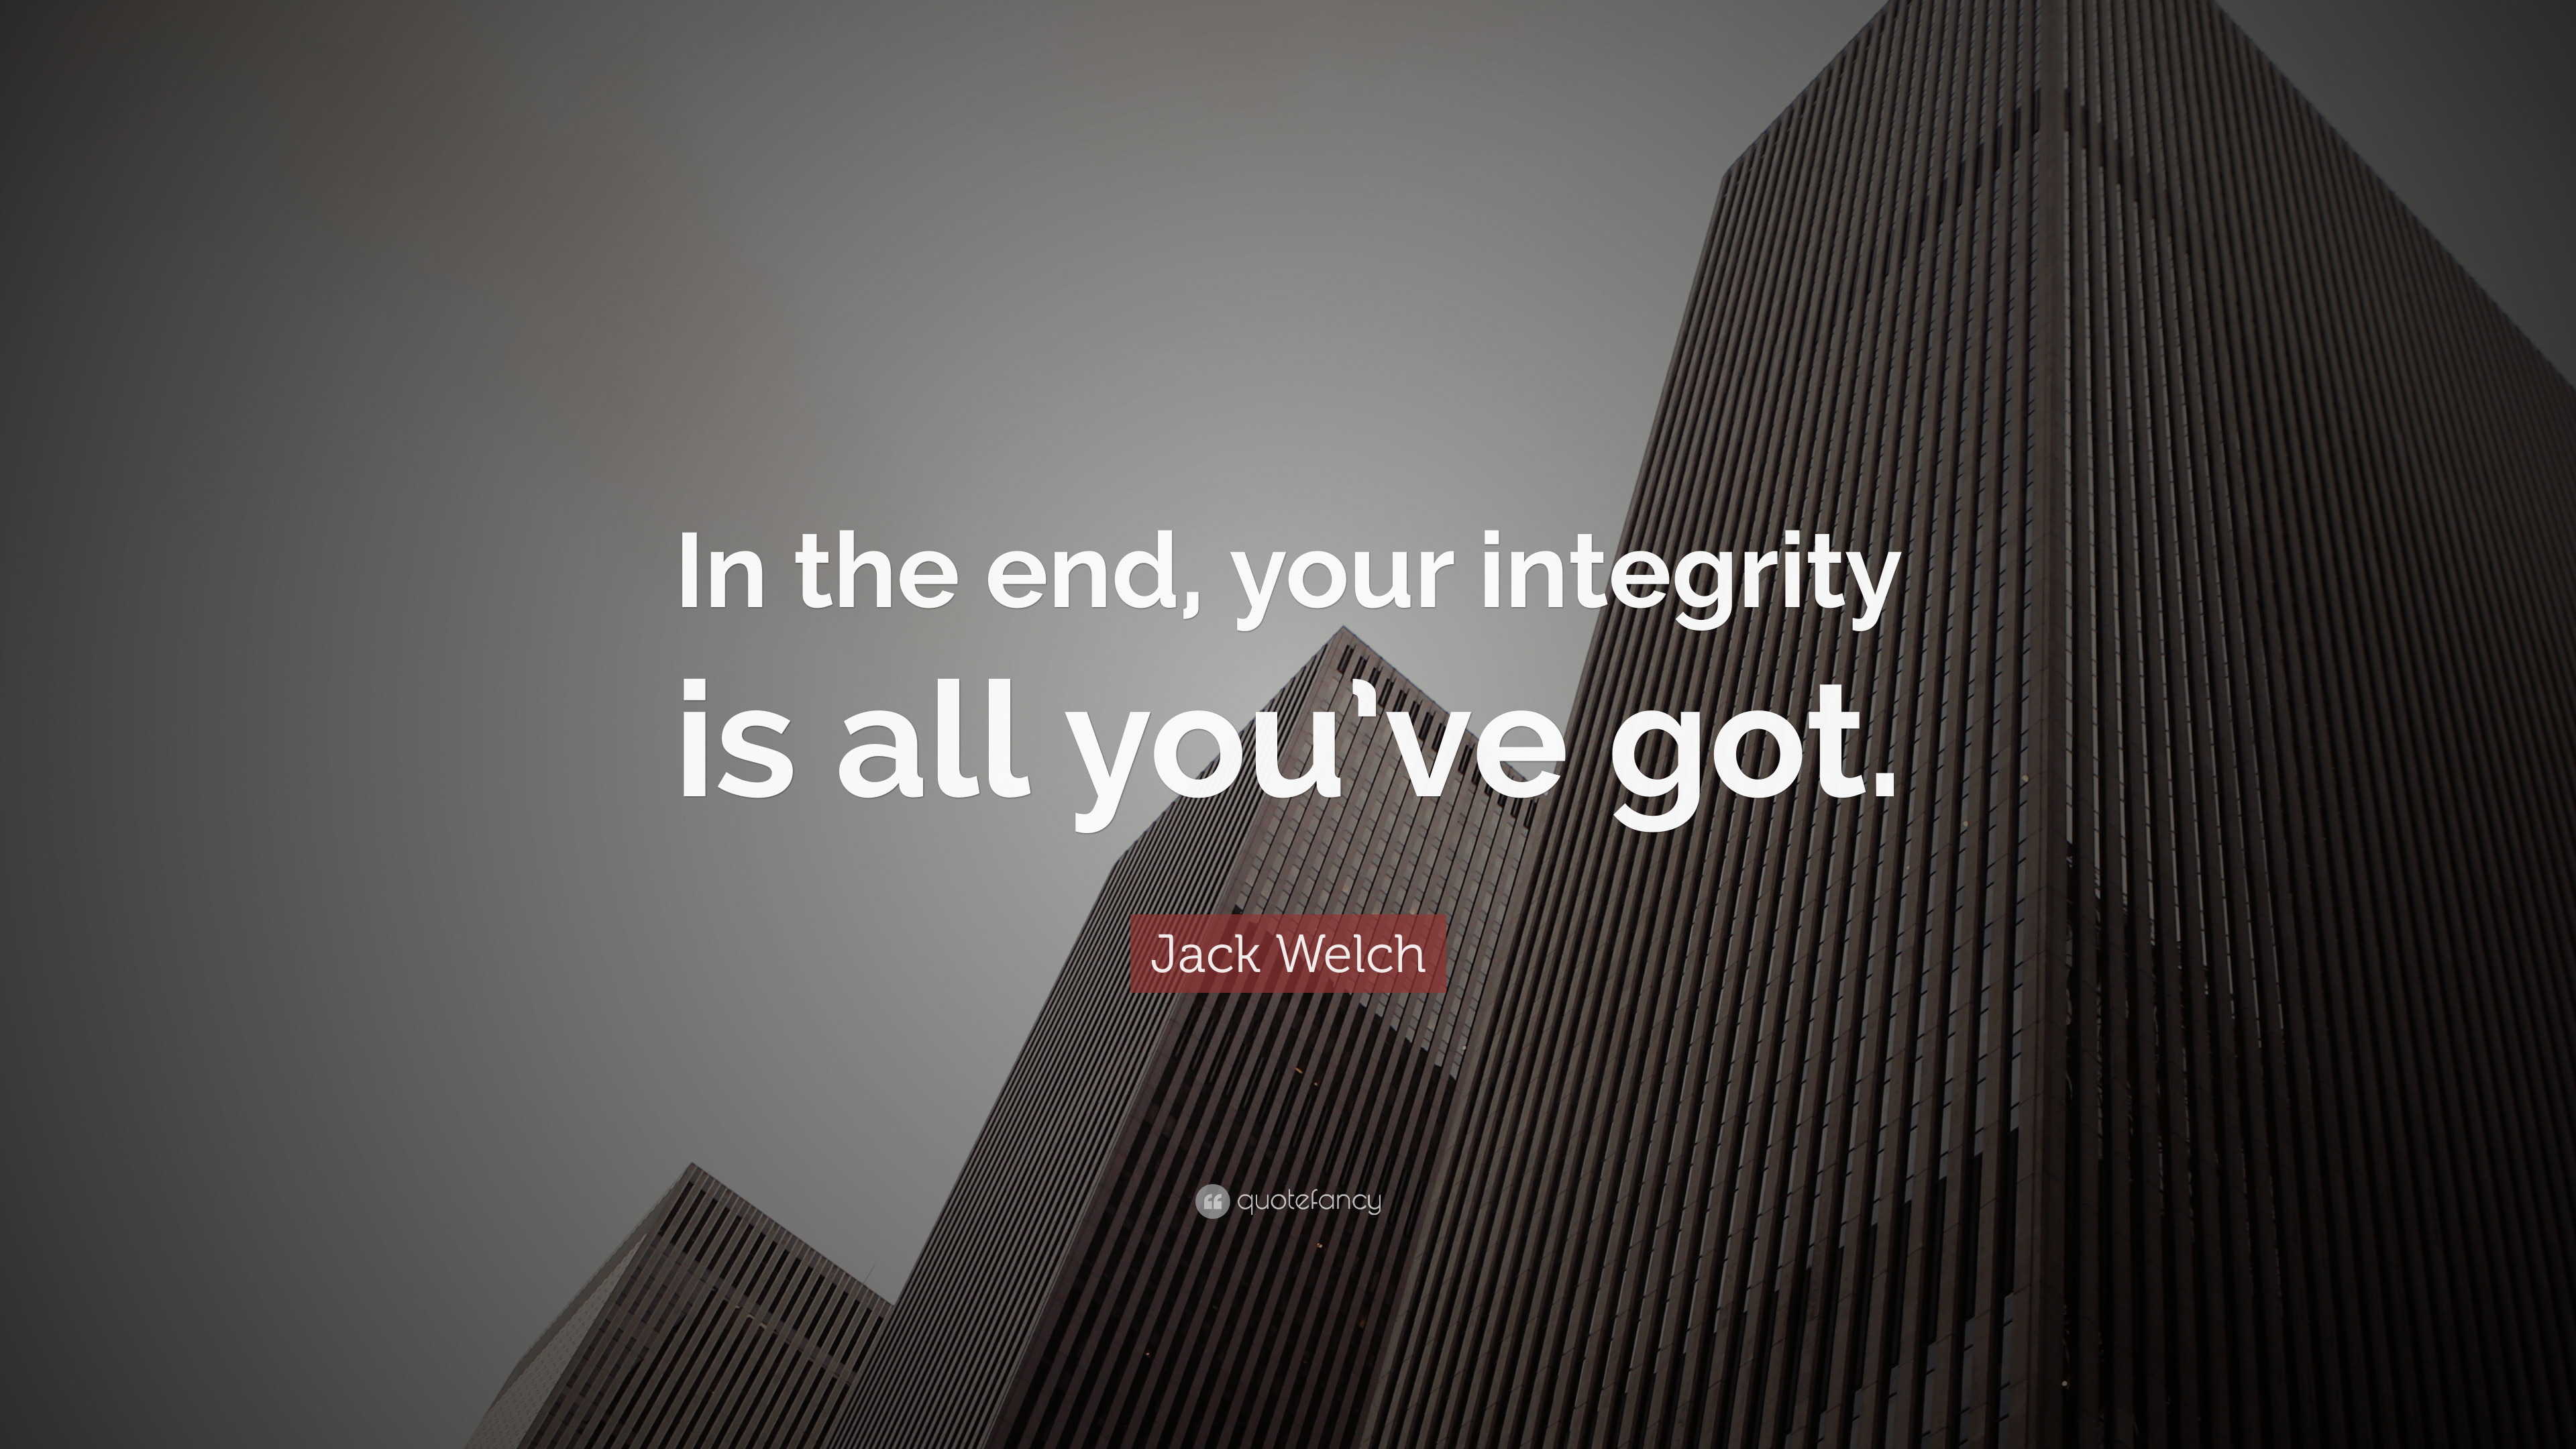 Jack Welch Quotes | Jack Welch Quote In The End Your Integrity Is All You Ve Got